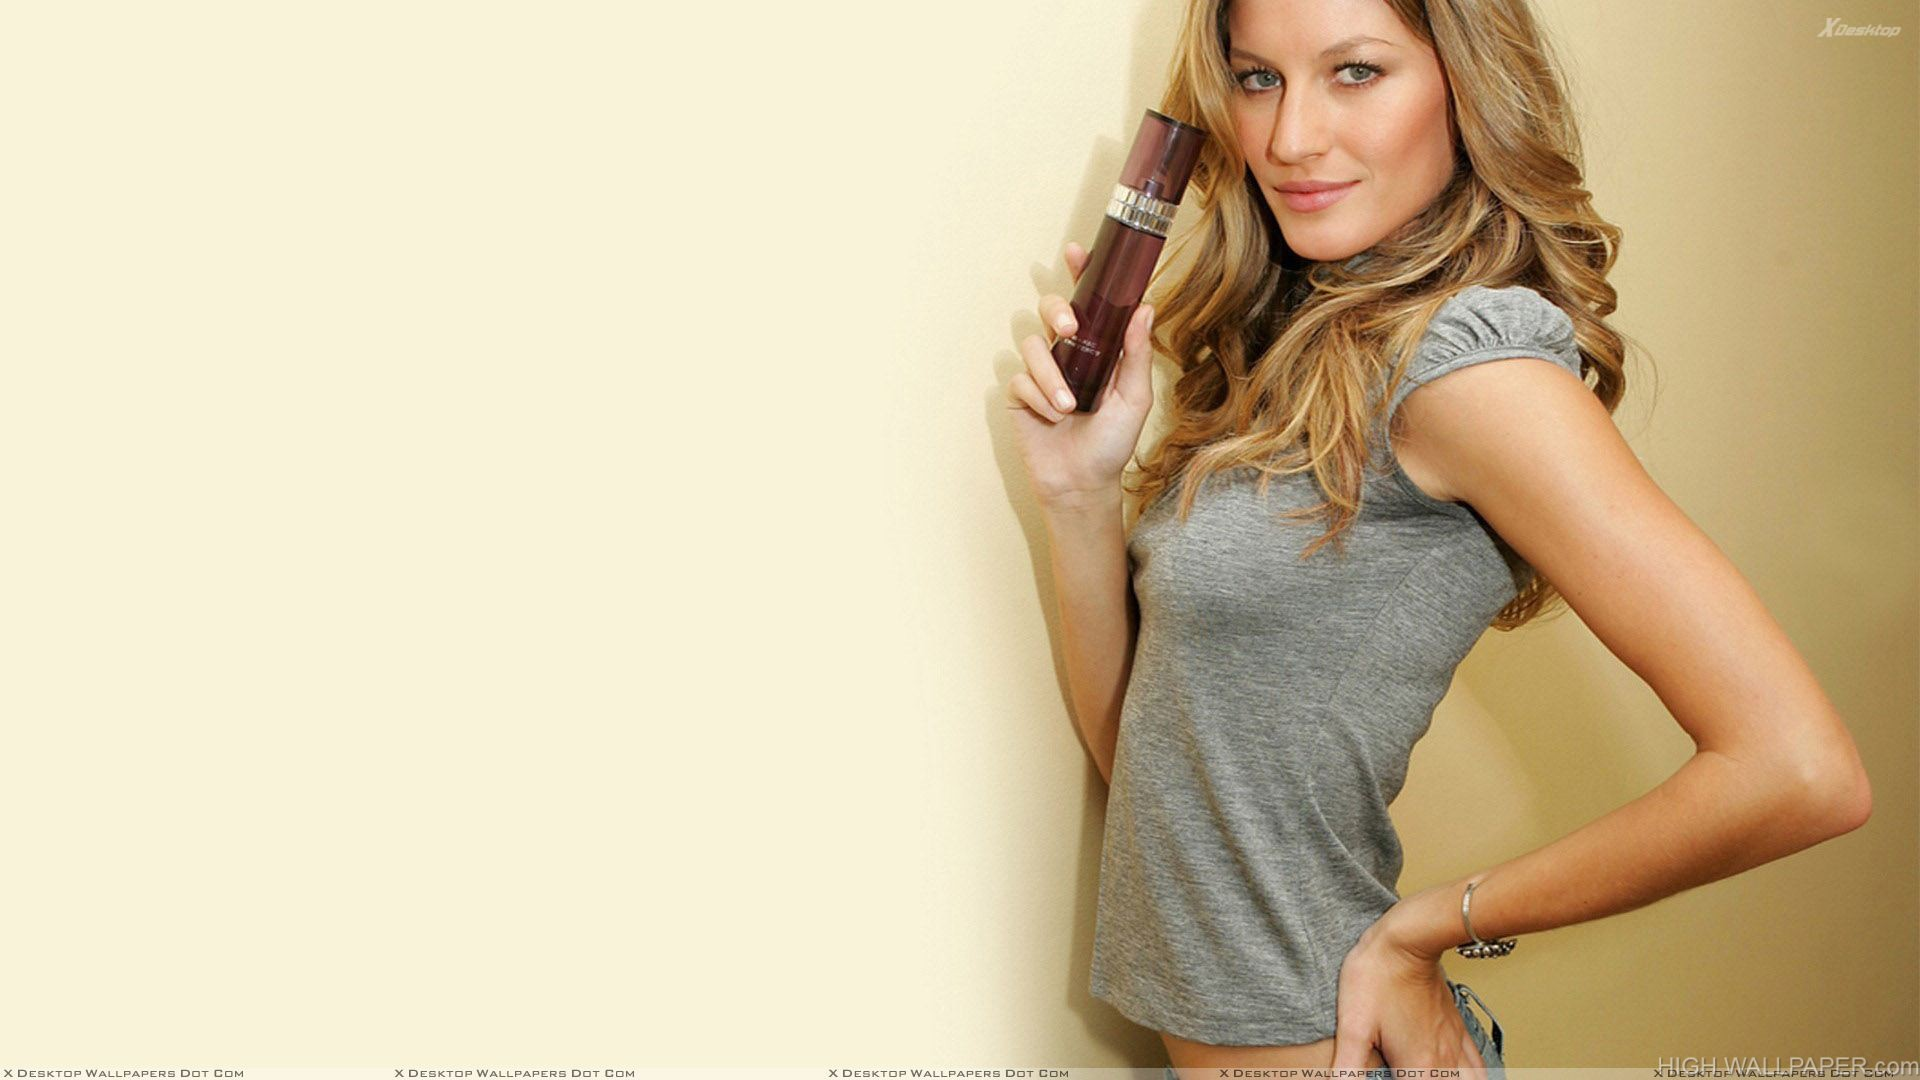 Gisele Bundchen In Grey Top Looking At Camera